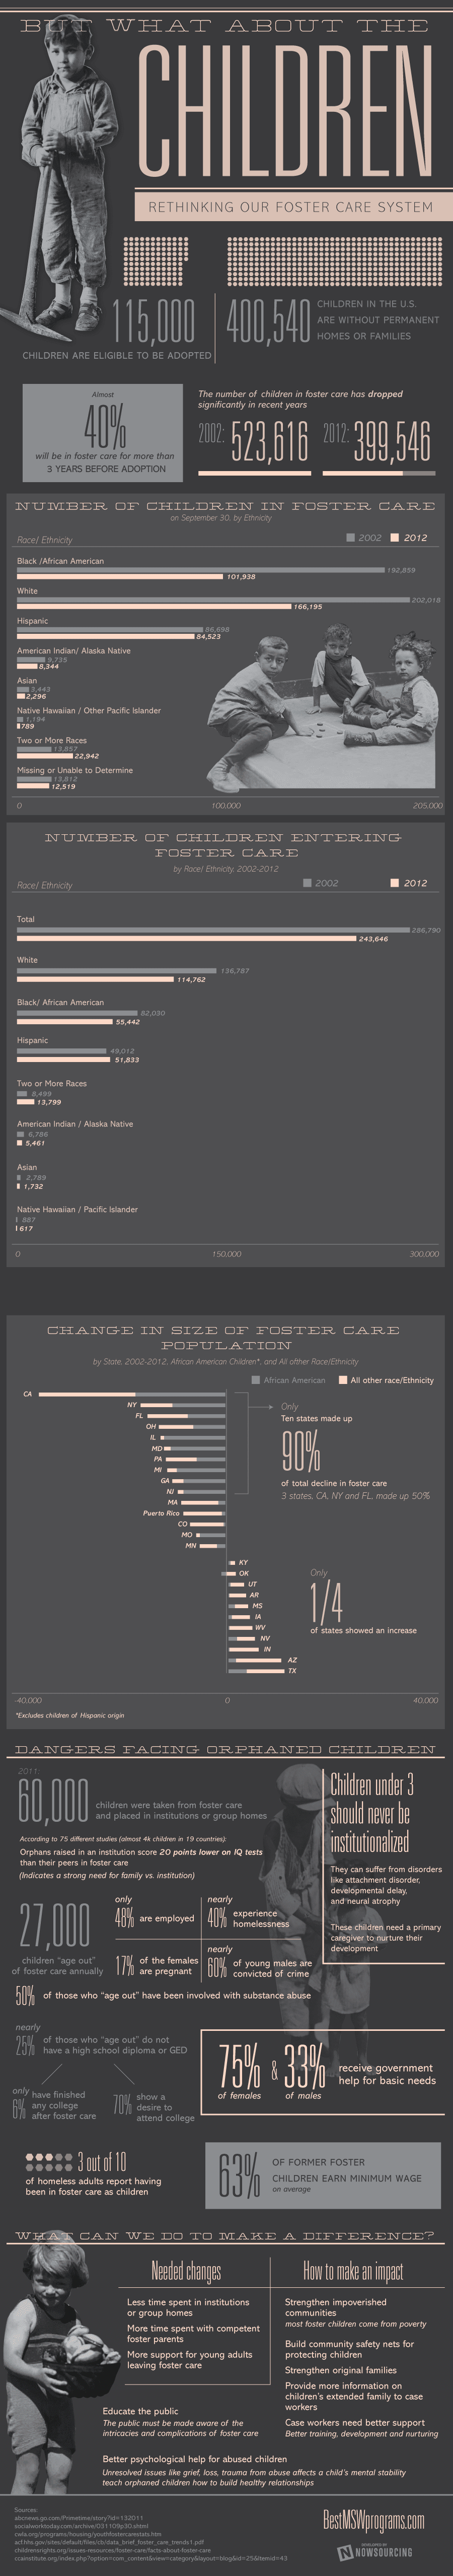 Infographic: But What About the Children?